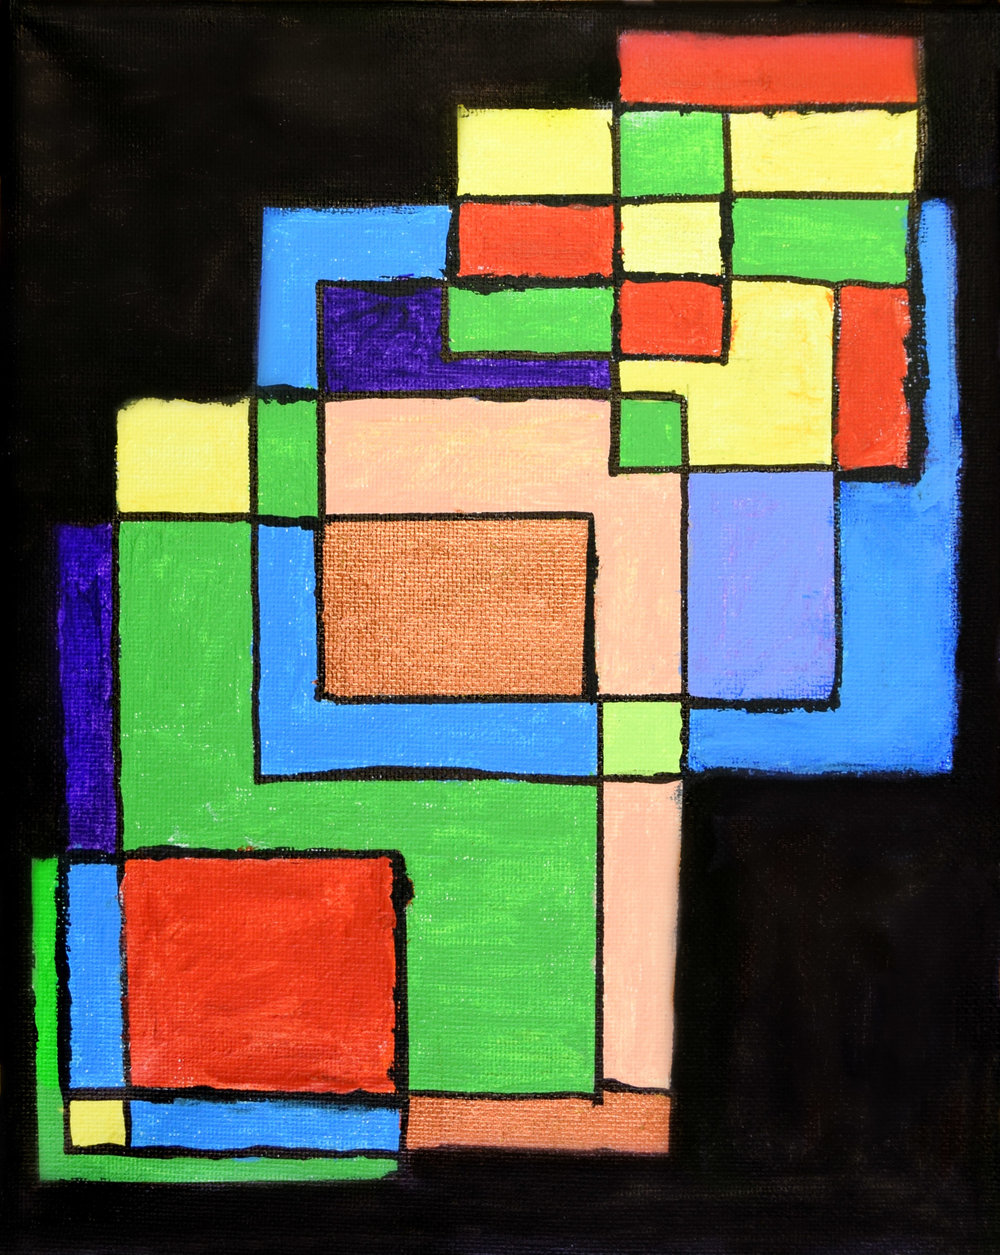 The Squares of Art Susan Nevers Acrylic on Canvas 11x17 Print $35.00